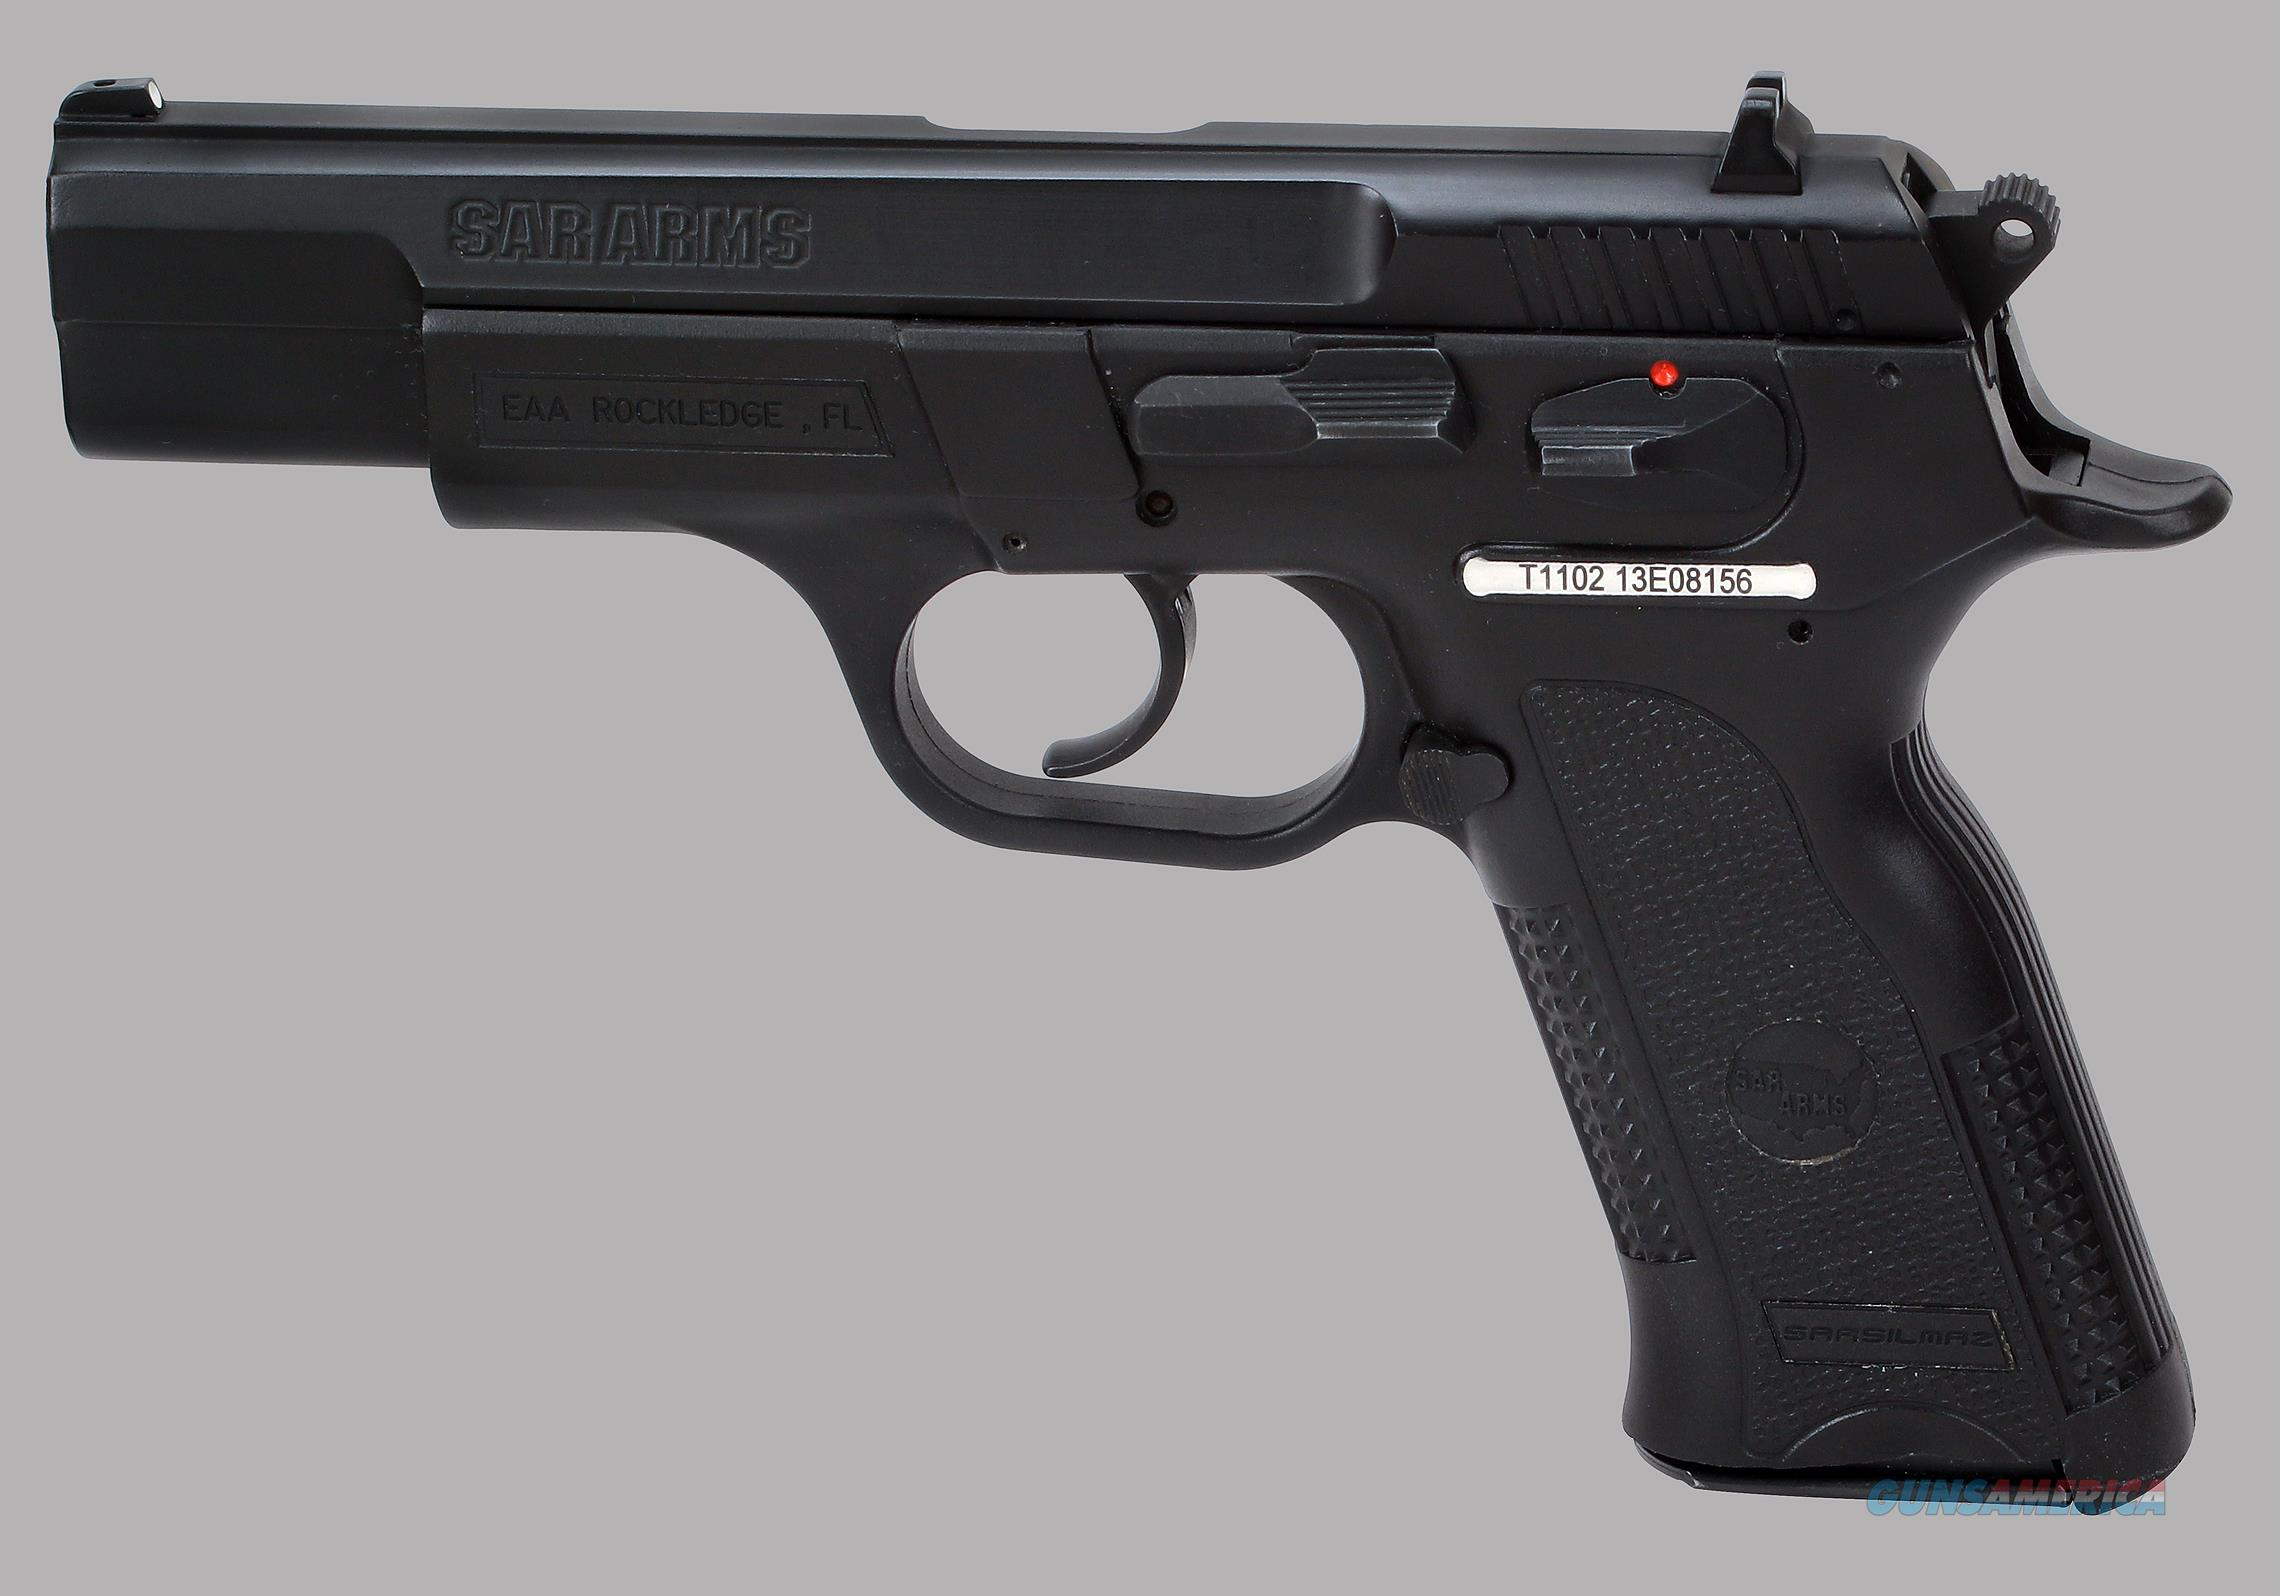 SAR Arms (EAA) 9mm Model SARB6P Pistol  Guns > Pistols > EAA Pistols > Other